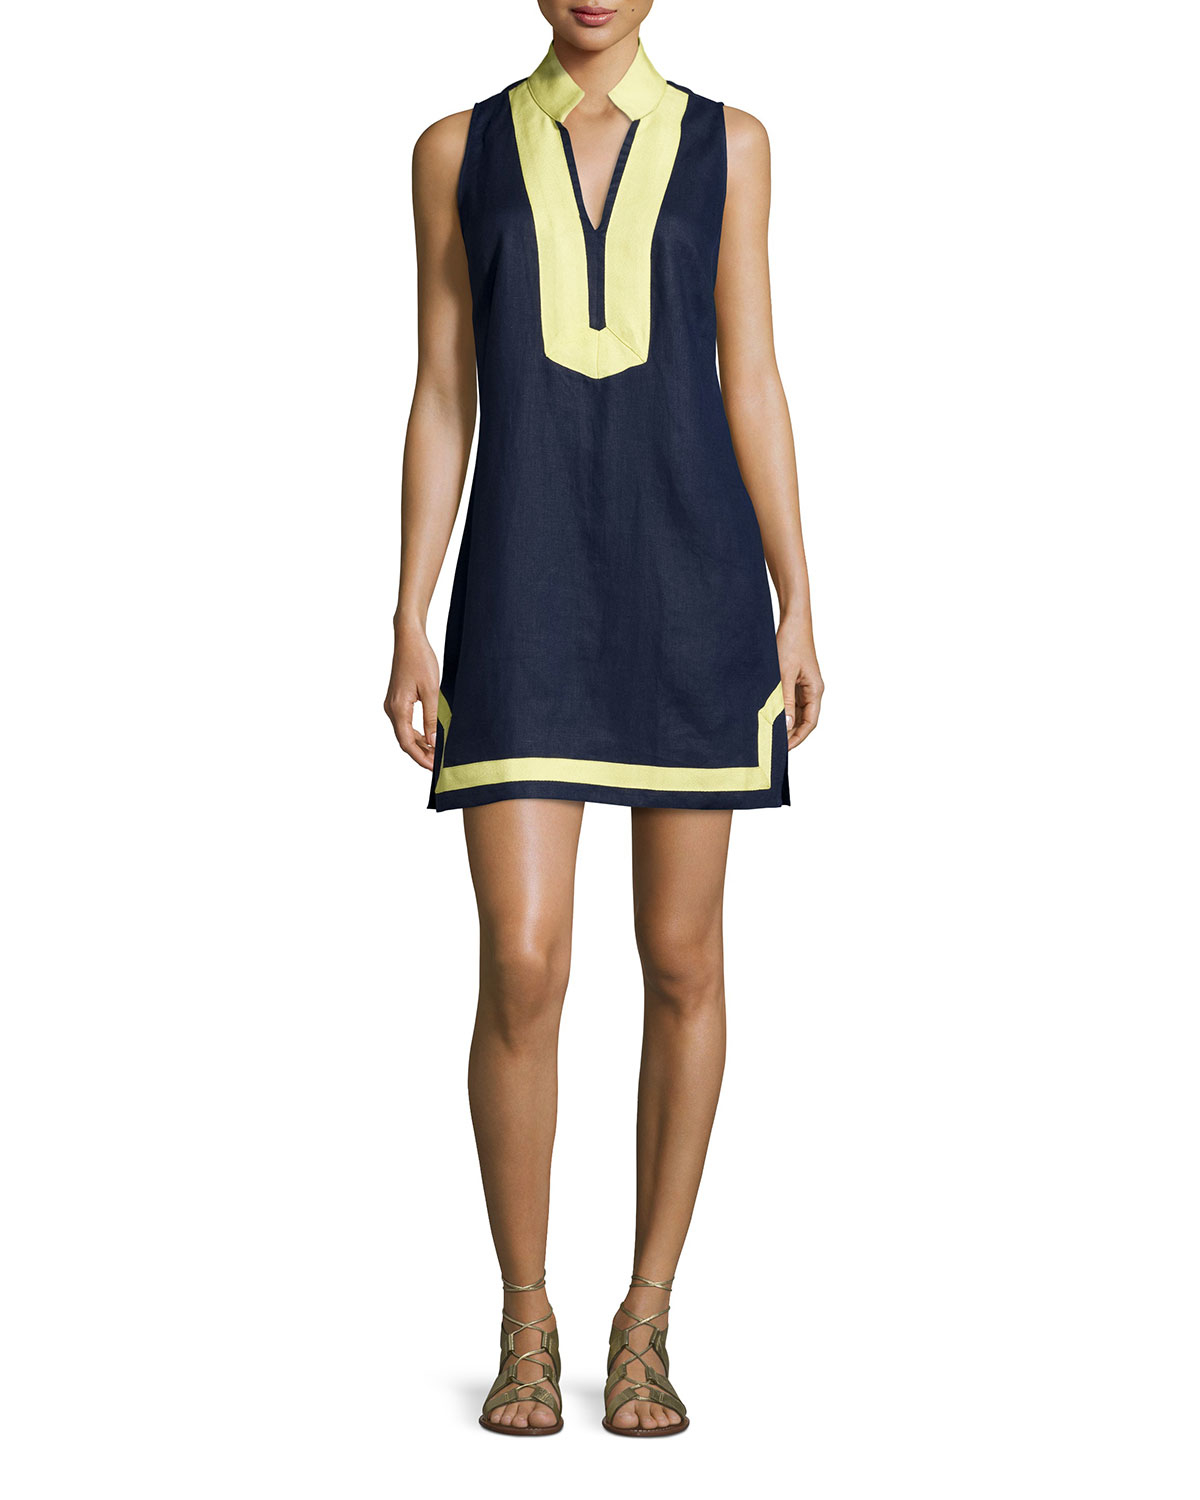 1e42d85886 Lyst - Sail To Sable Classic Linen Sleeveless Dress in Yellow